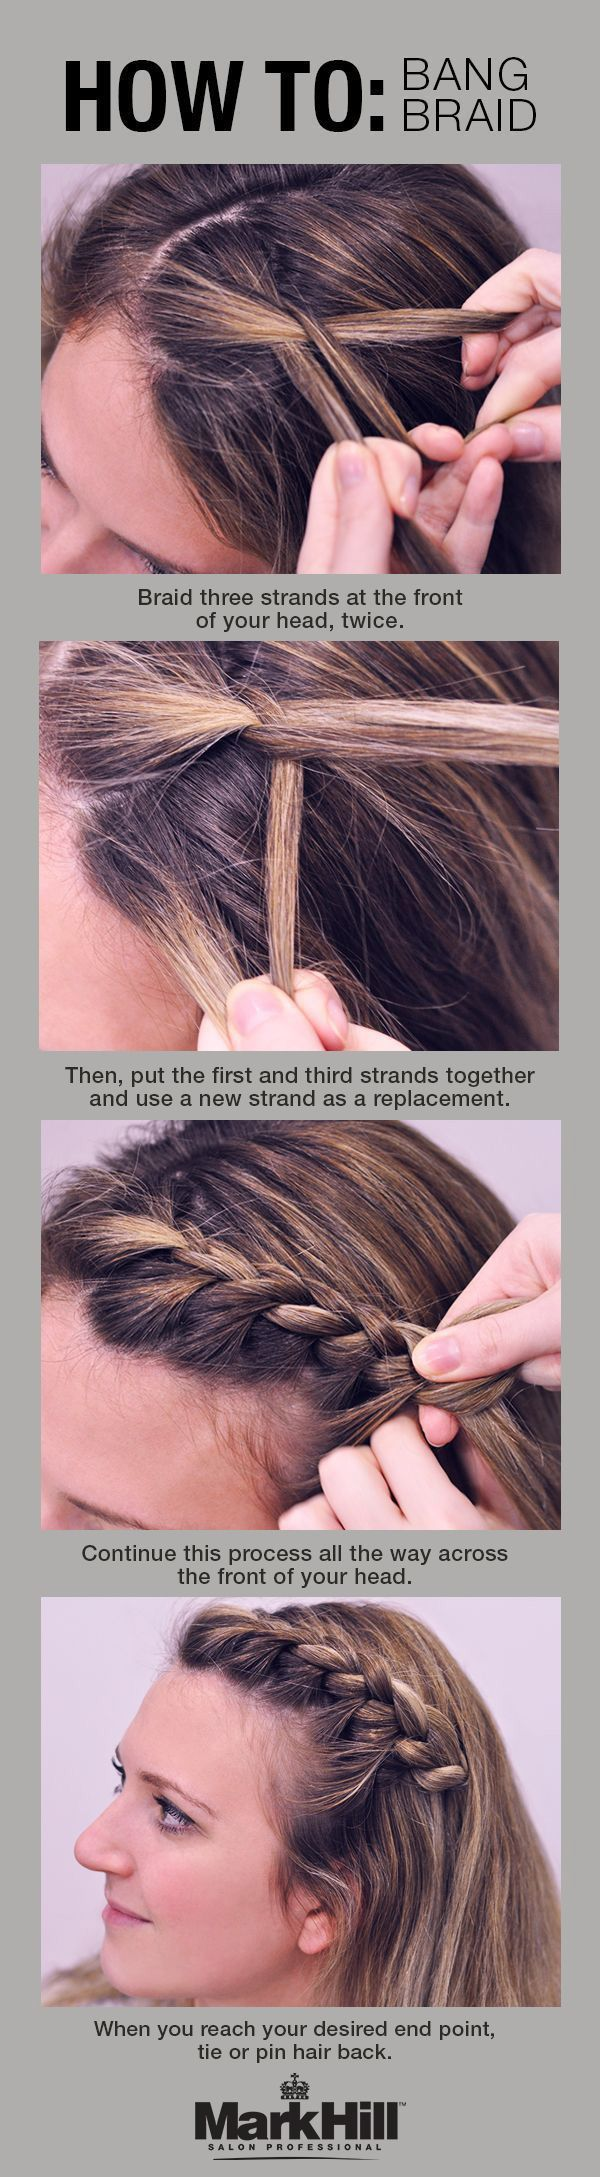 Braid Bang's hairstyle tutorial